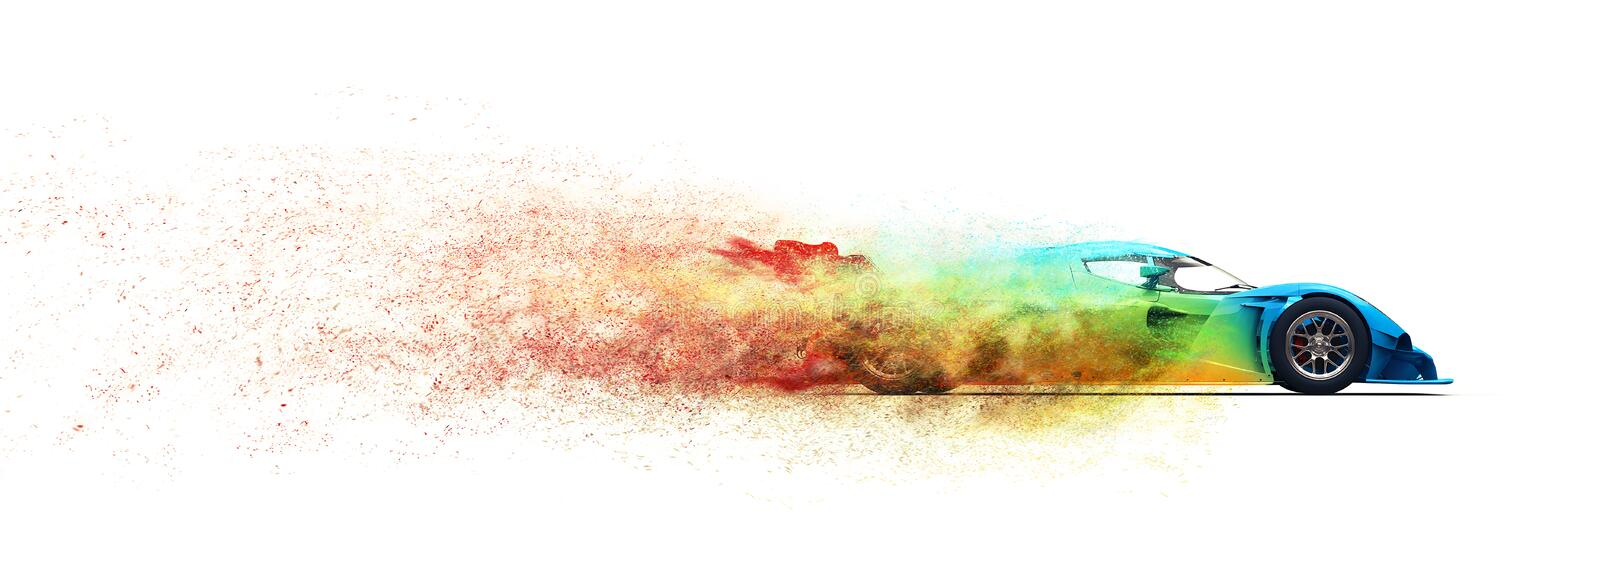 Awesome colorful super fast race car - particle disintegration effect. Isolated on white background vector illustration